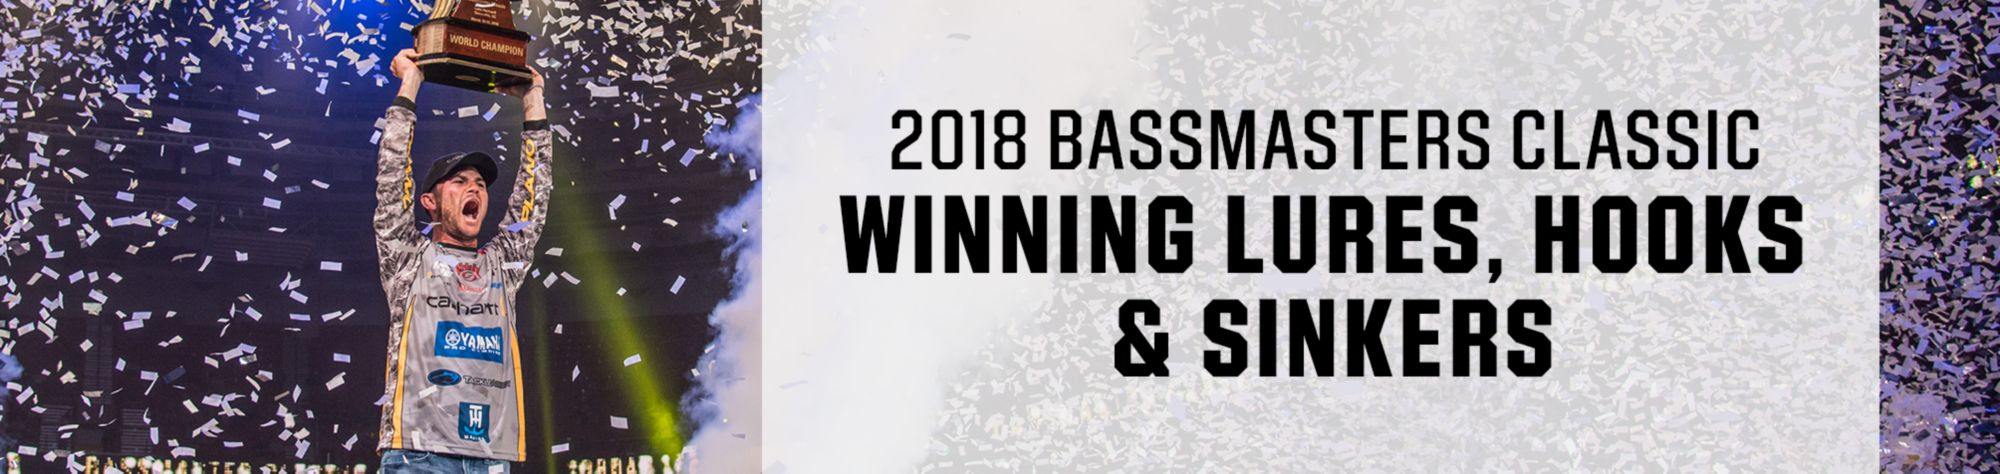 2018 Bassmasters Classic Winning Lures, Hooks & Sinkers